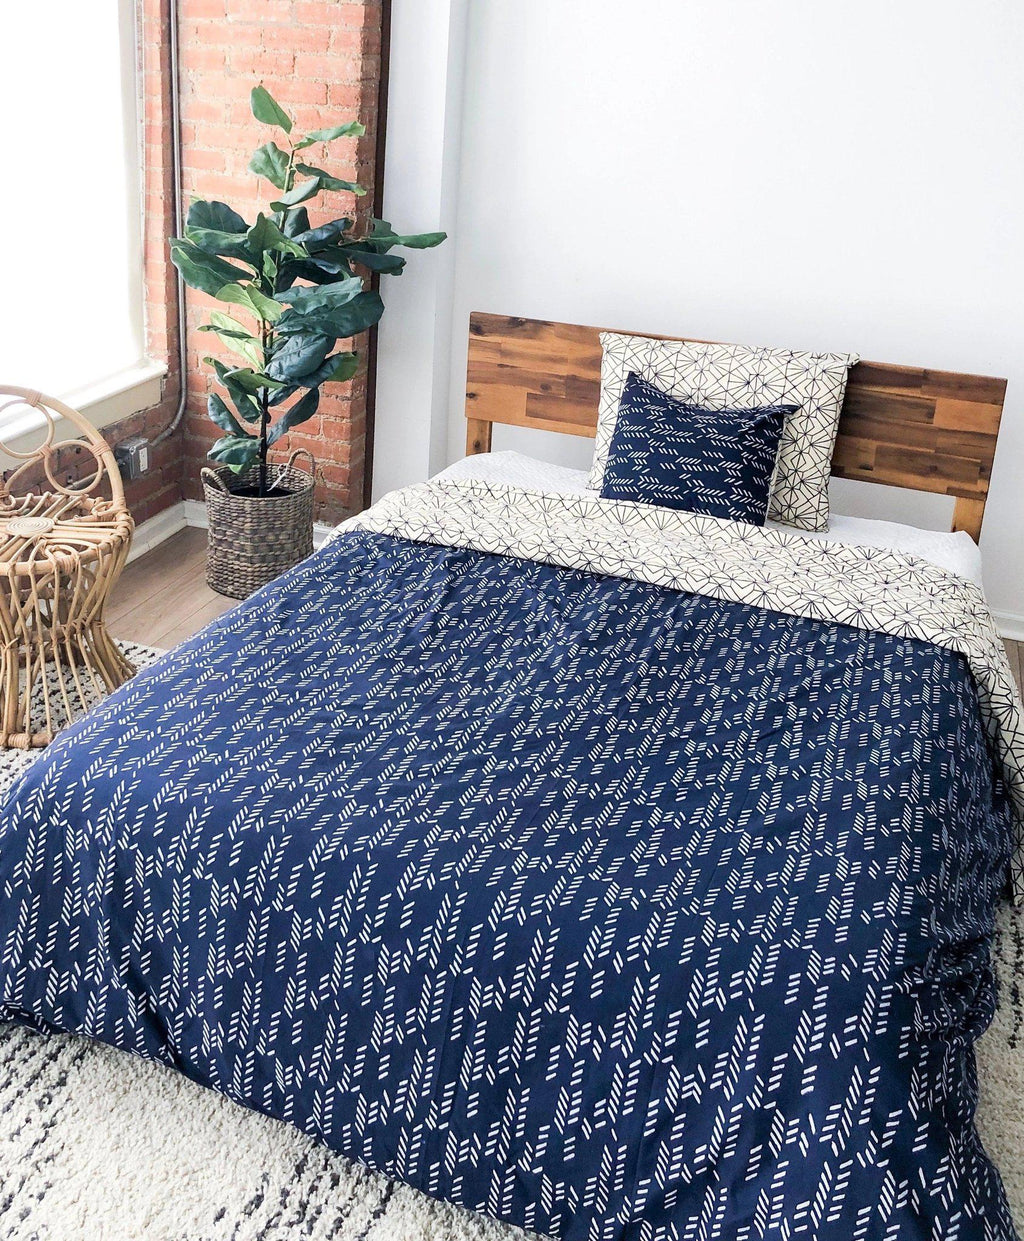 Organic Cotton Bedding Set in Art Deco/Stylized Feather Navy + Cream